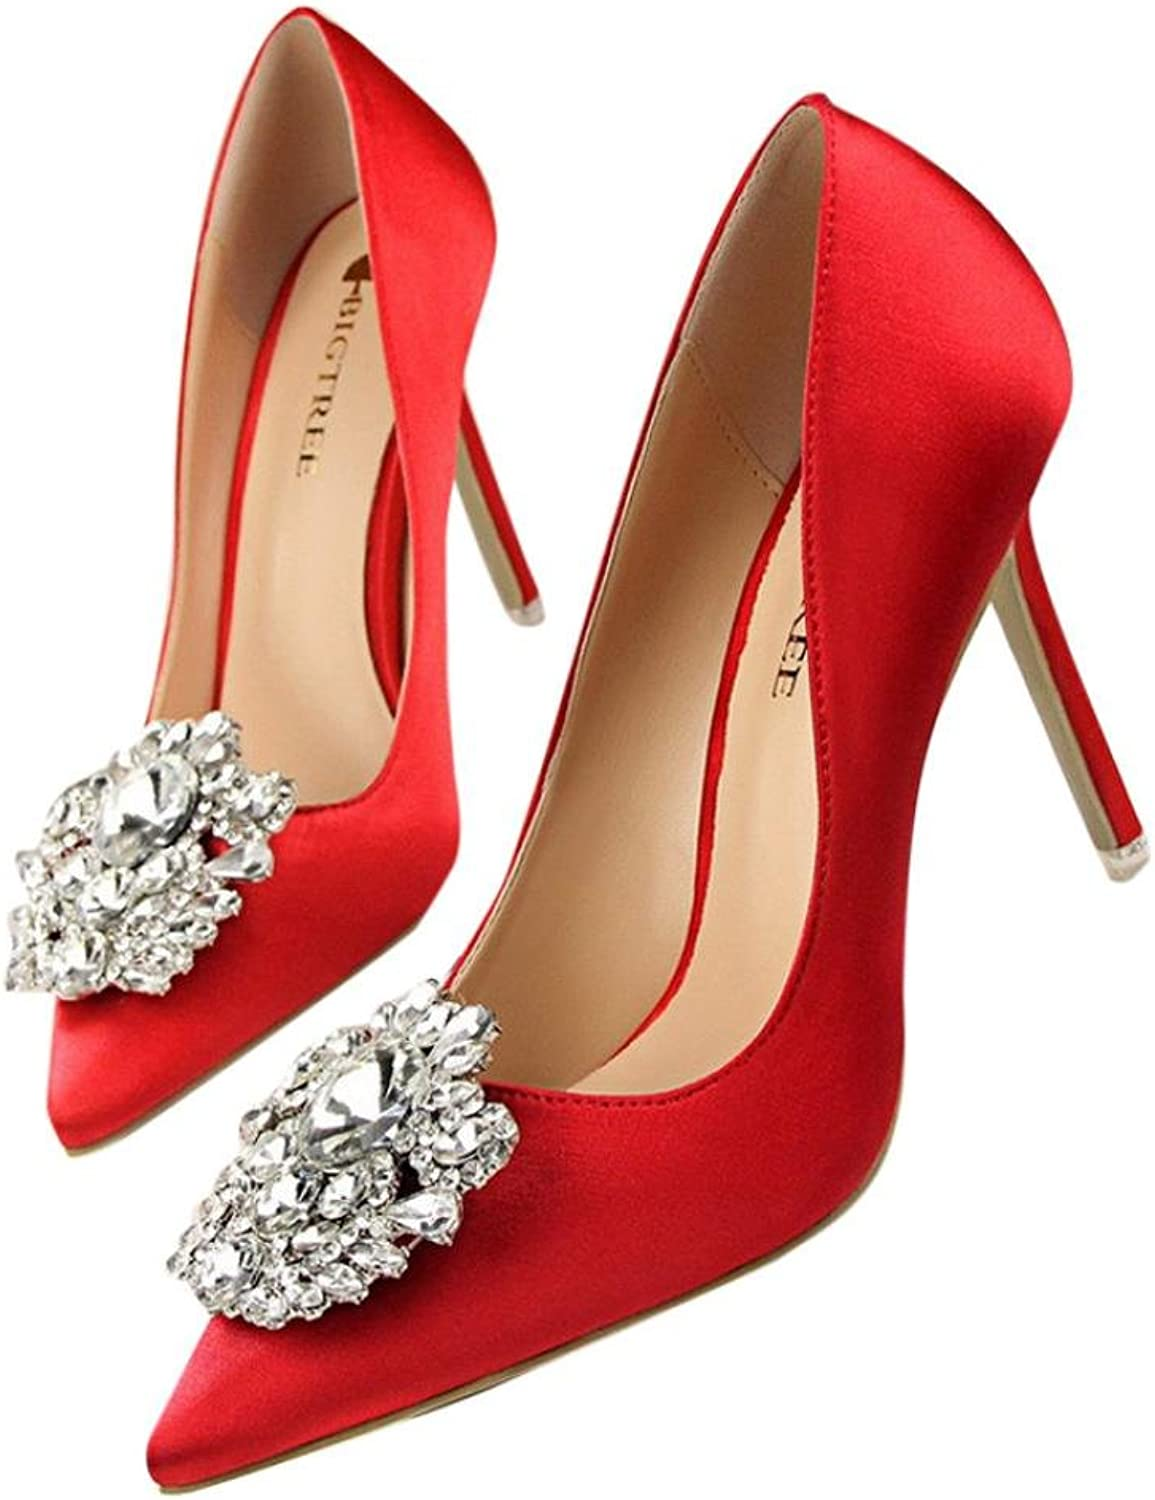 Outsta Women Pumps Elegant Rhinestone High Heels shoes Sexy Thin Pointed Single shoes (Red, US 7)